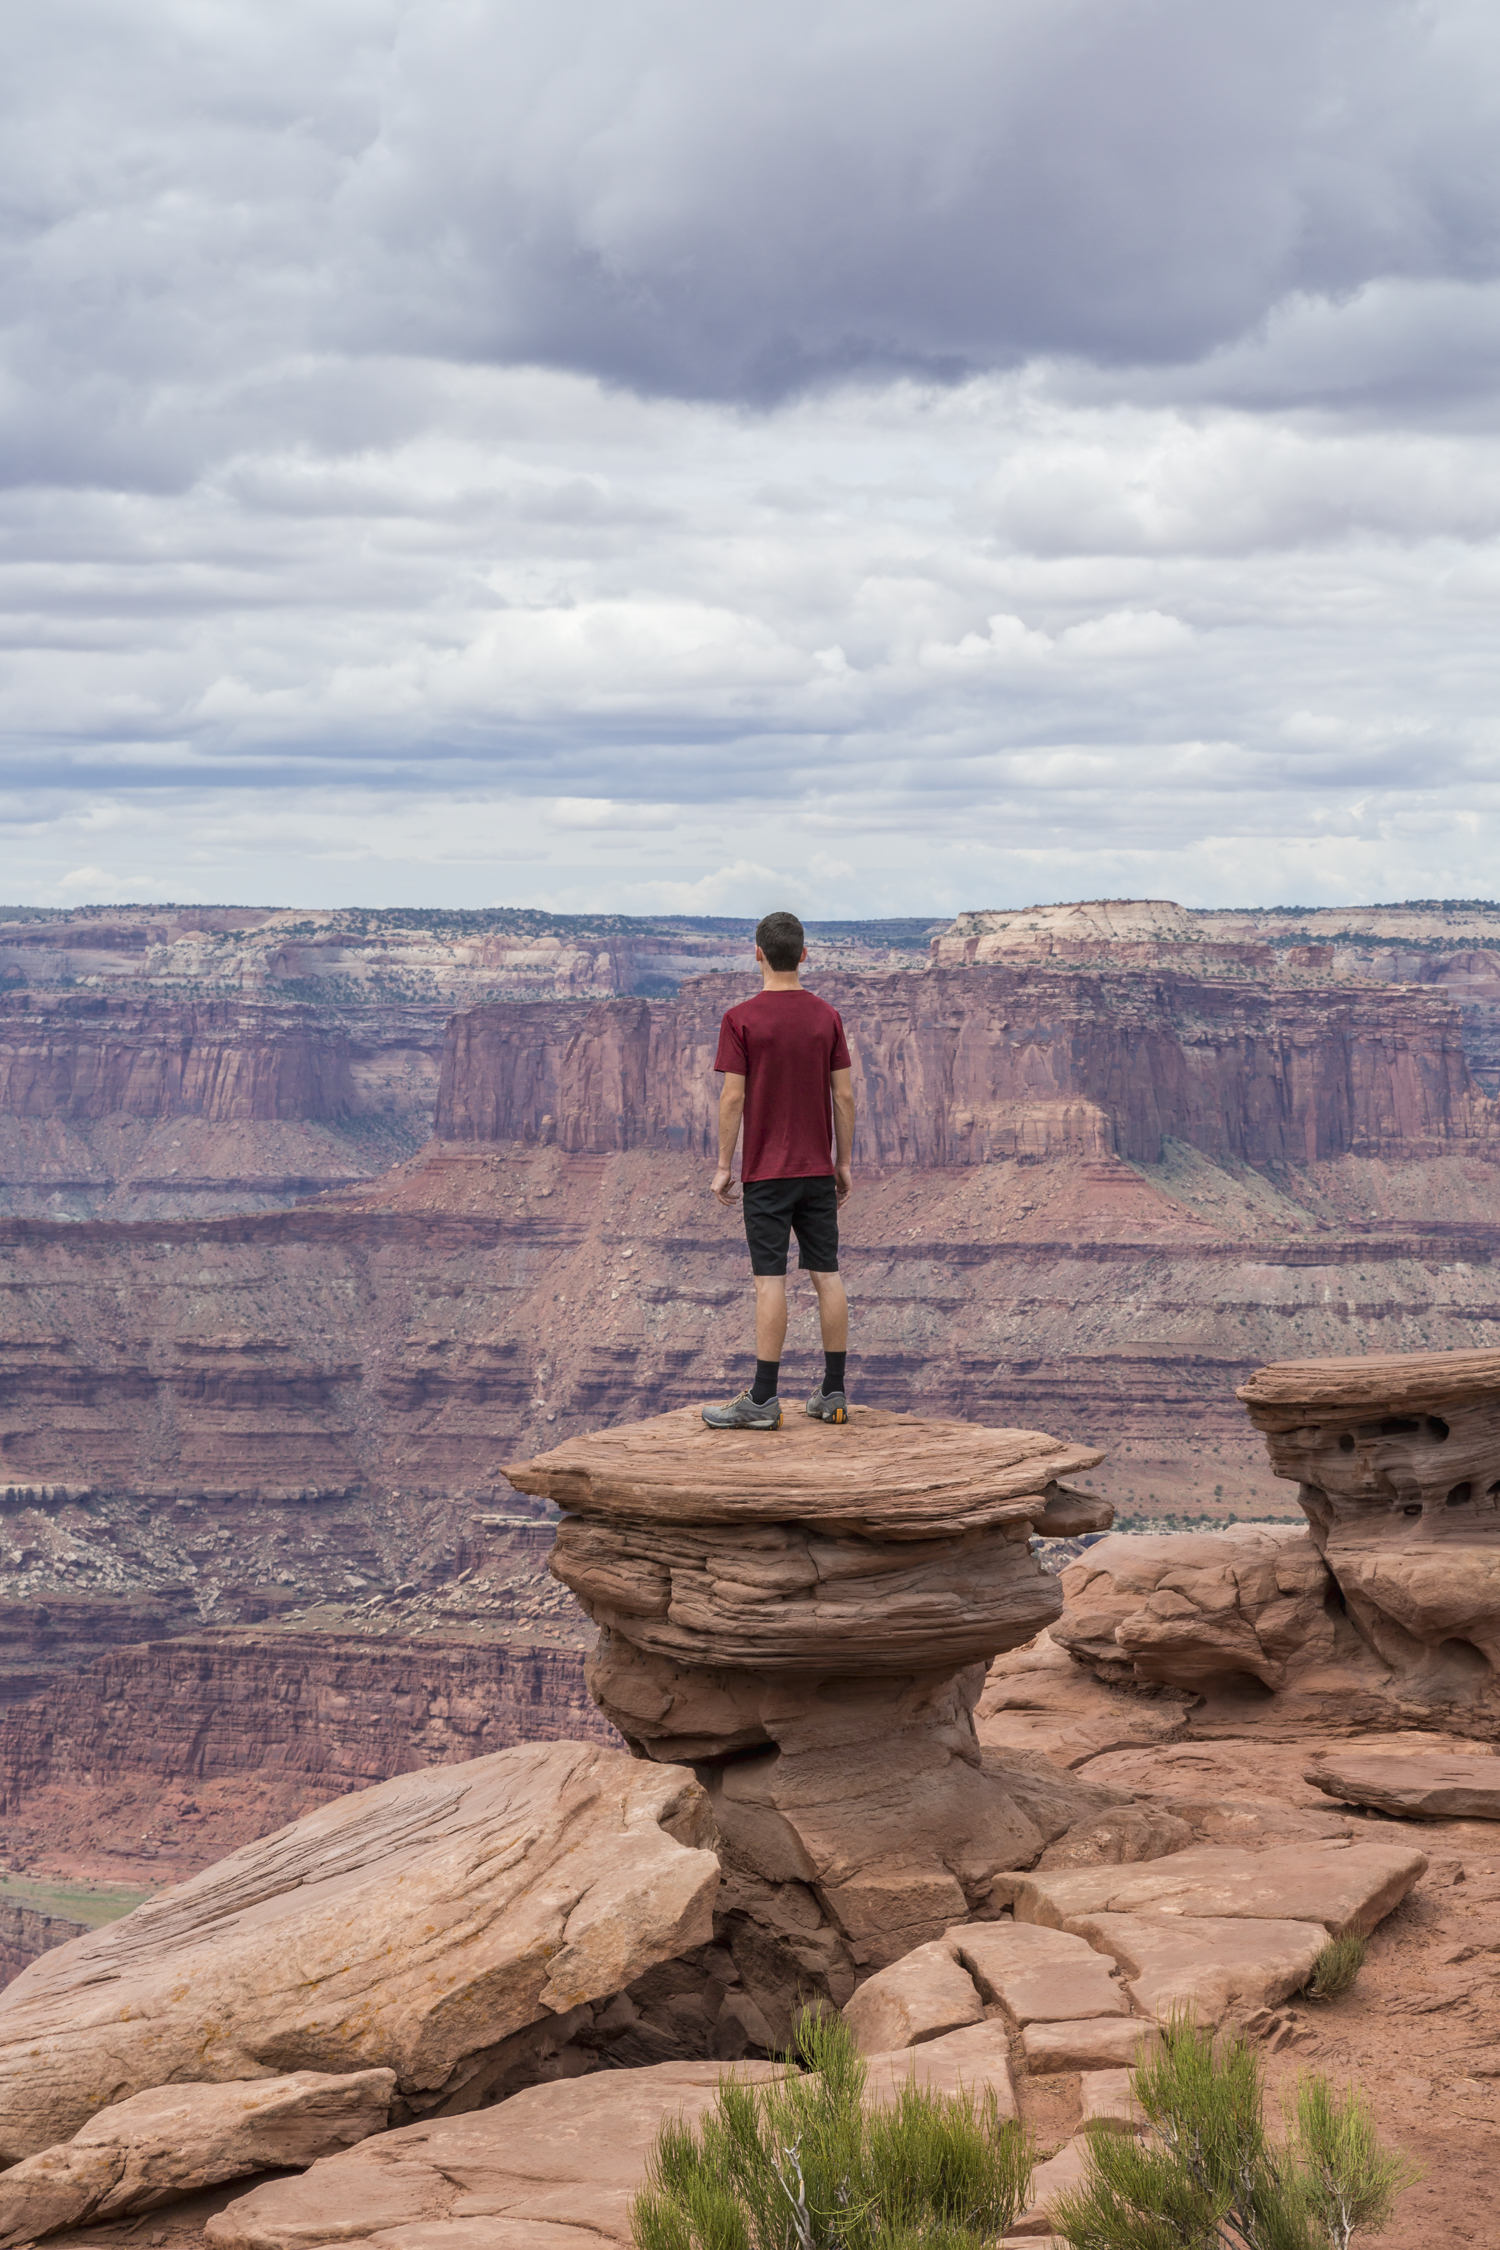 Teenage boy standing a rock pillar looking out over a vast lands